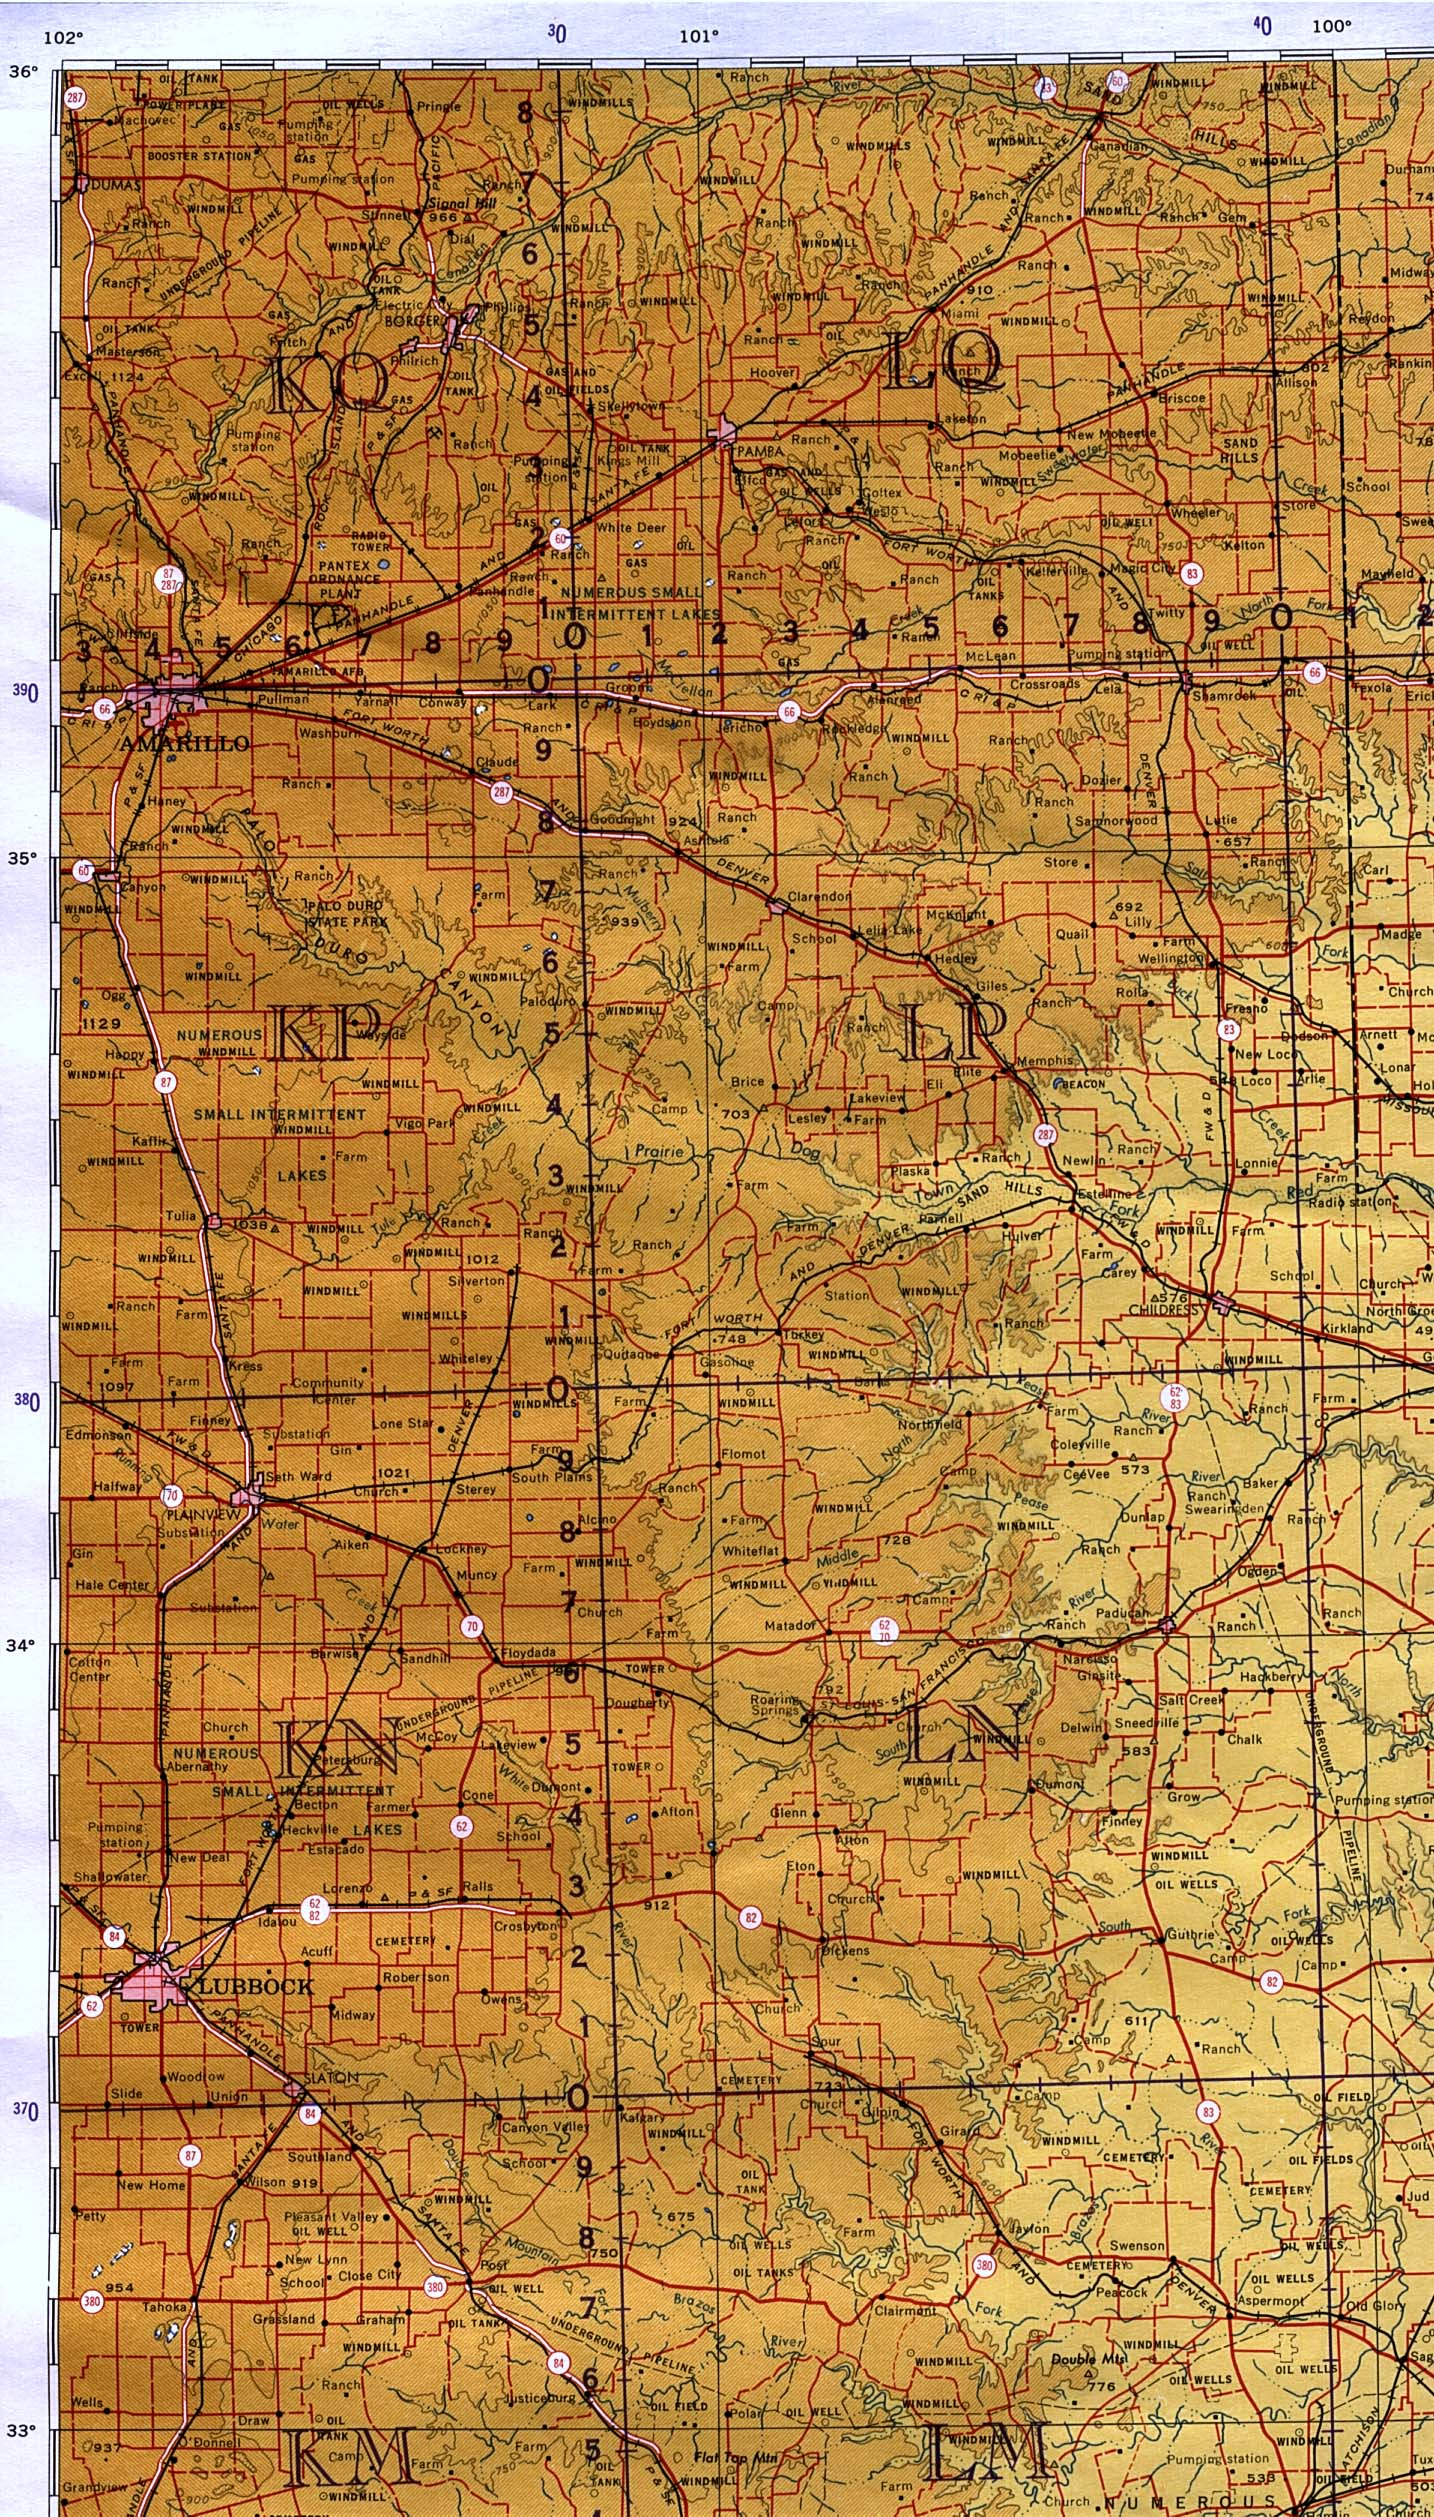 Map Of Texas Panhandle Cities.1up Travel Maps Of Texas Texas Panhandle Amarillo Lubbock And